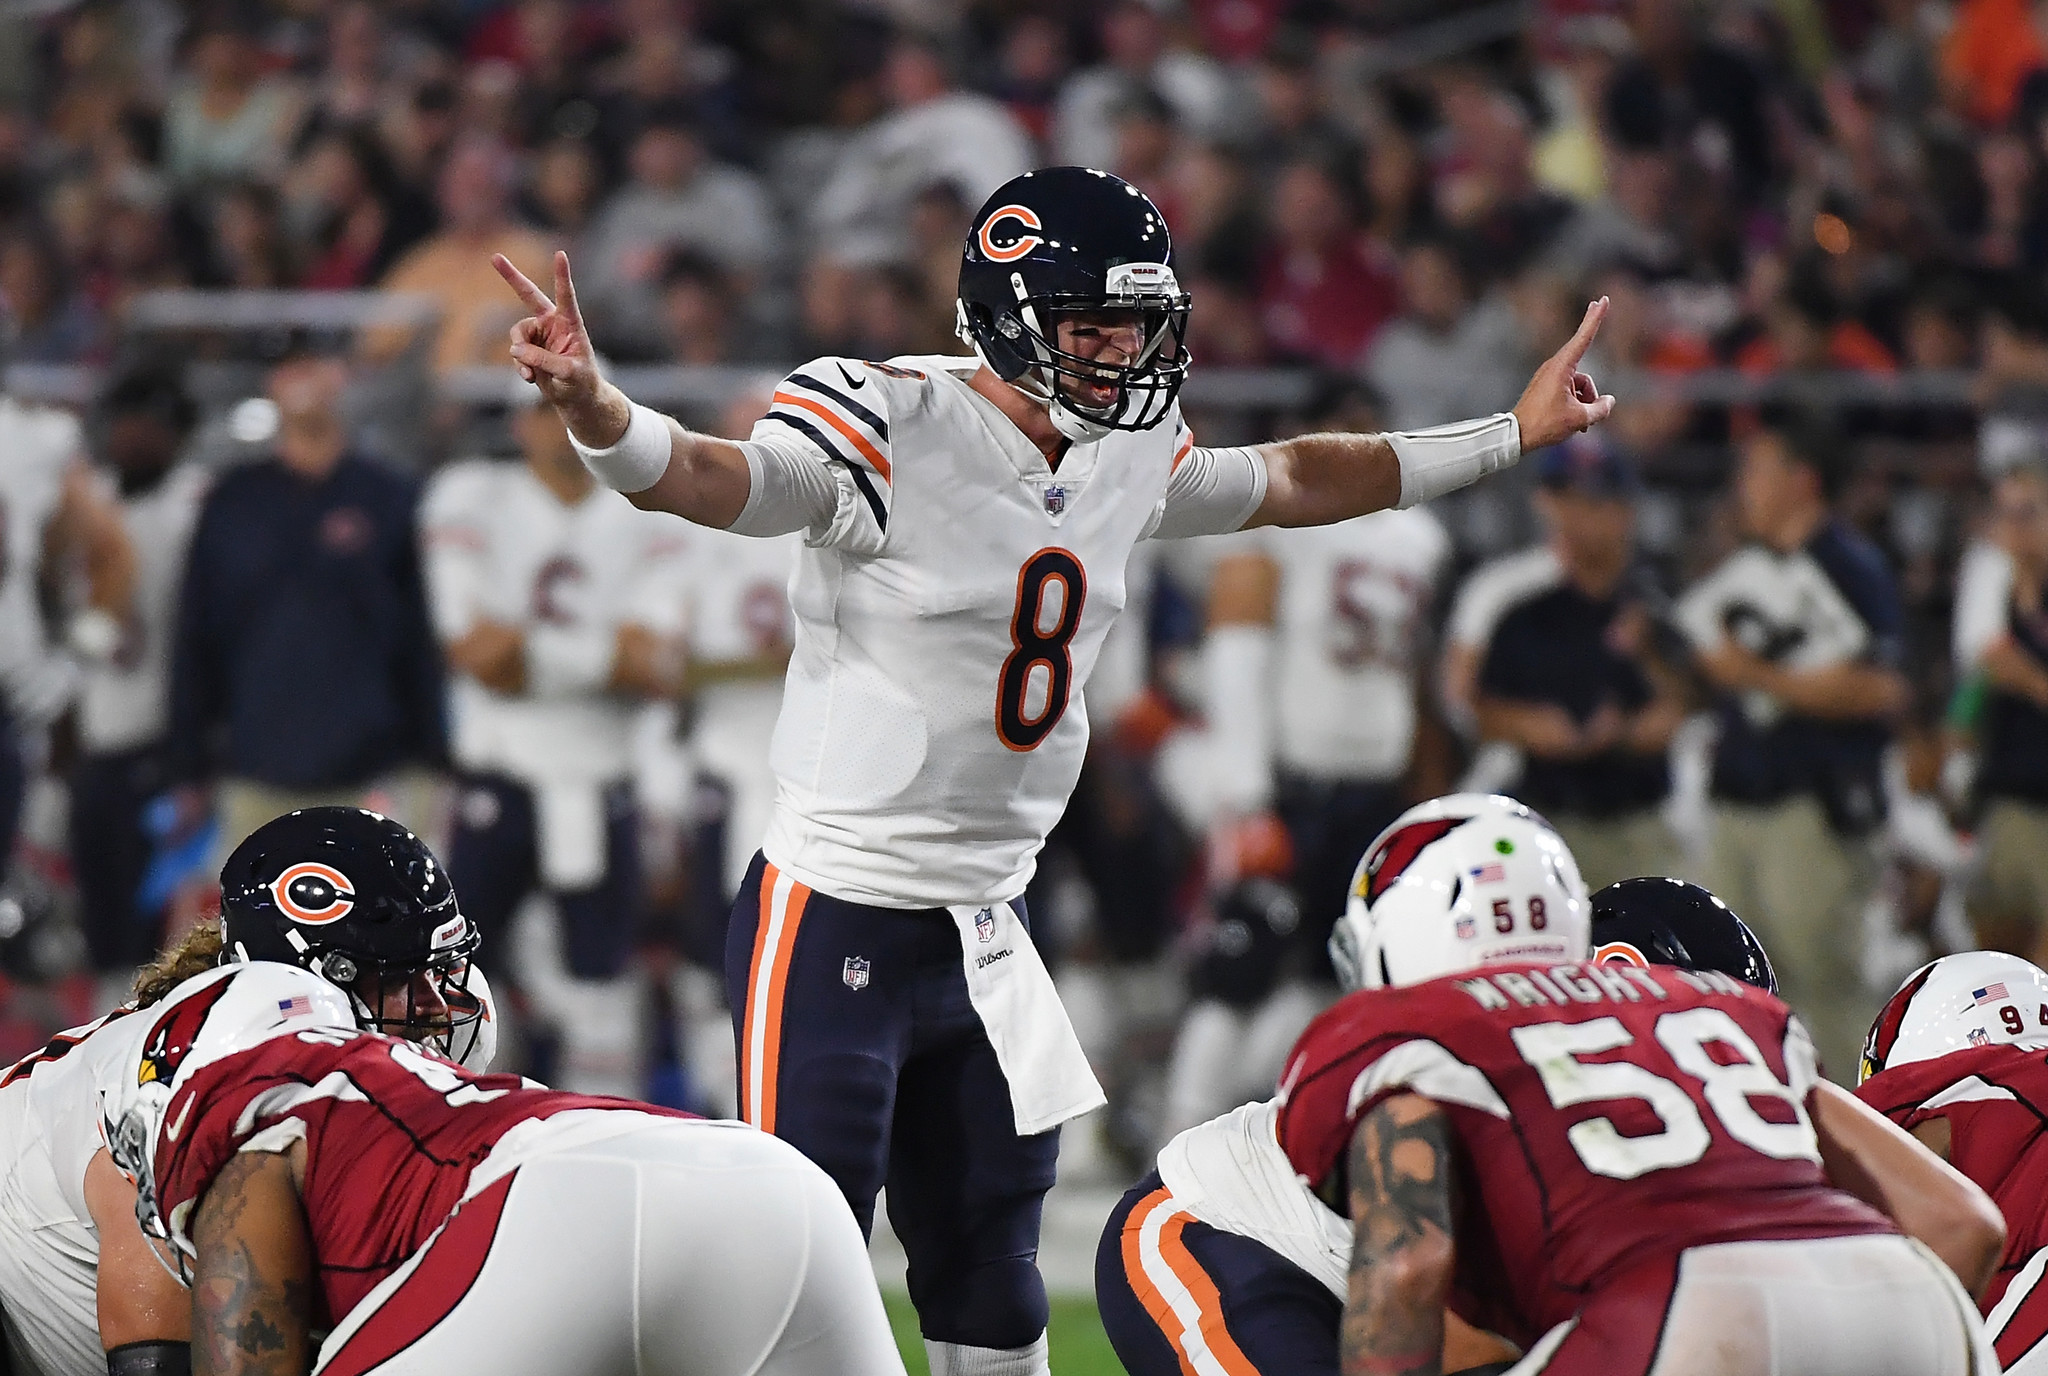 Ct-biggs-bears-patient-with-mike-glennon-spt-0820-20170819